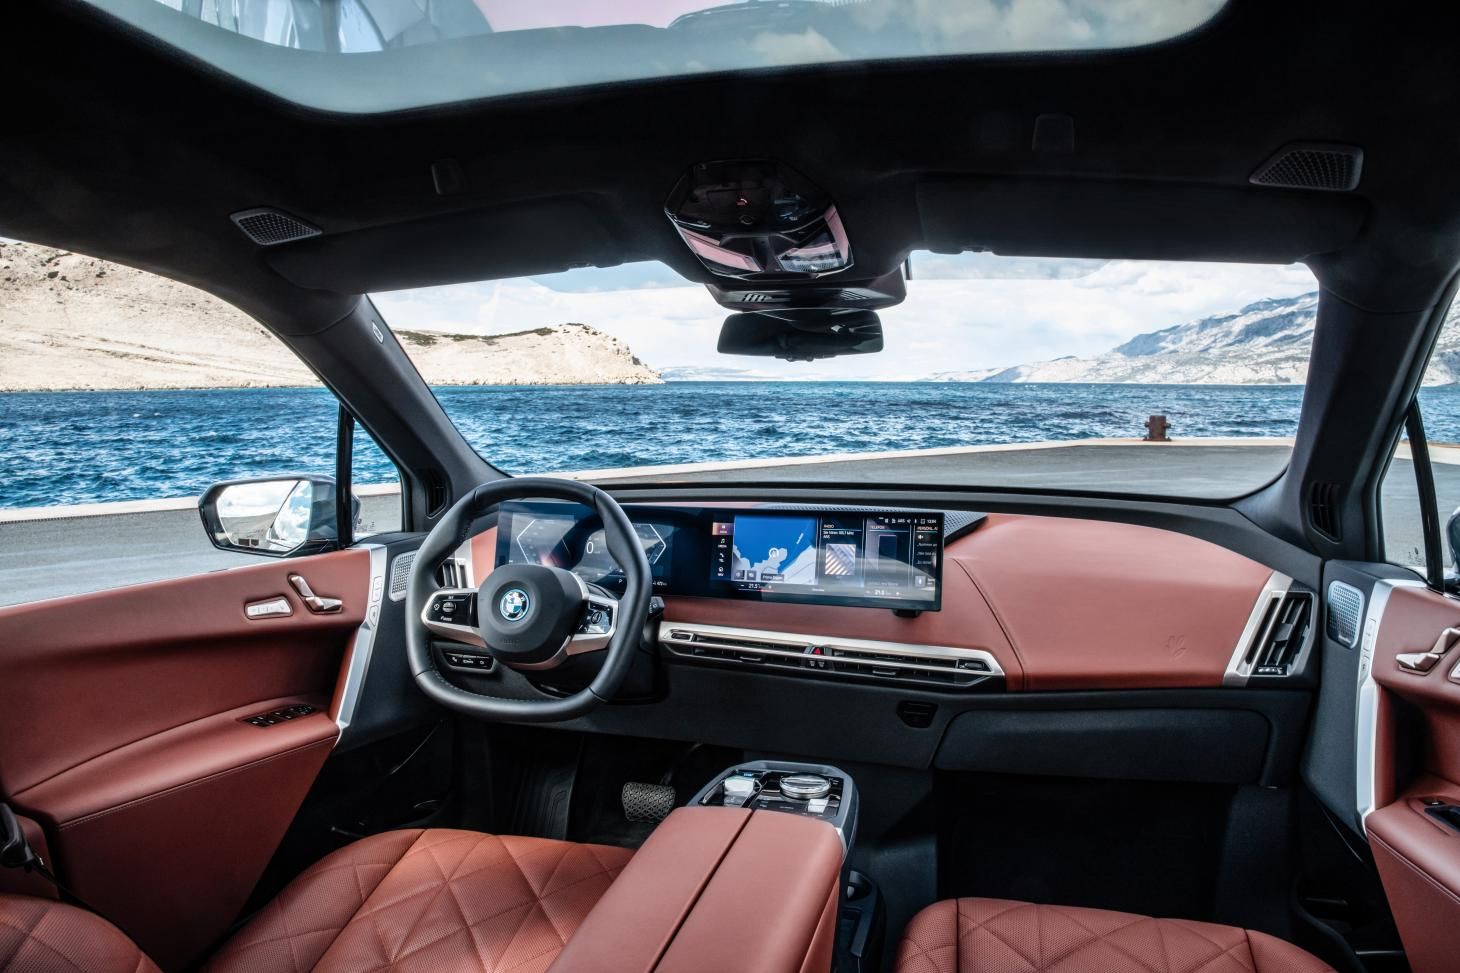 The dashboard of the 2021 BMW iX